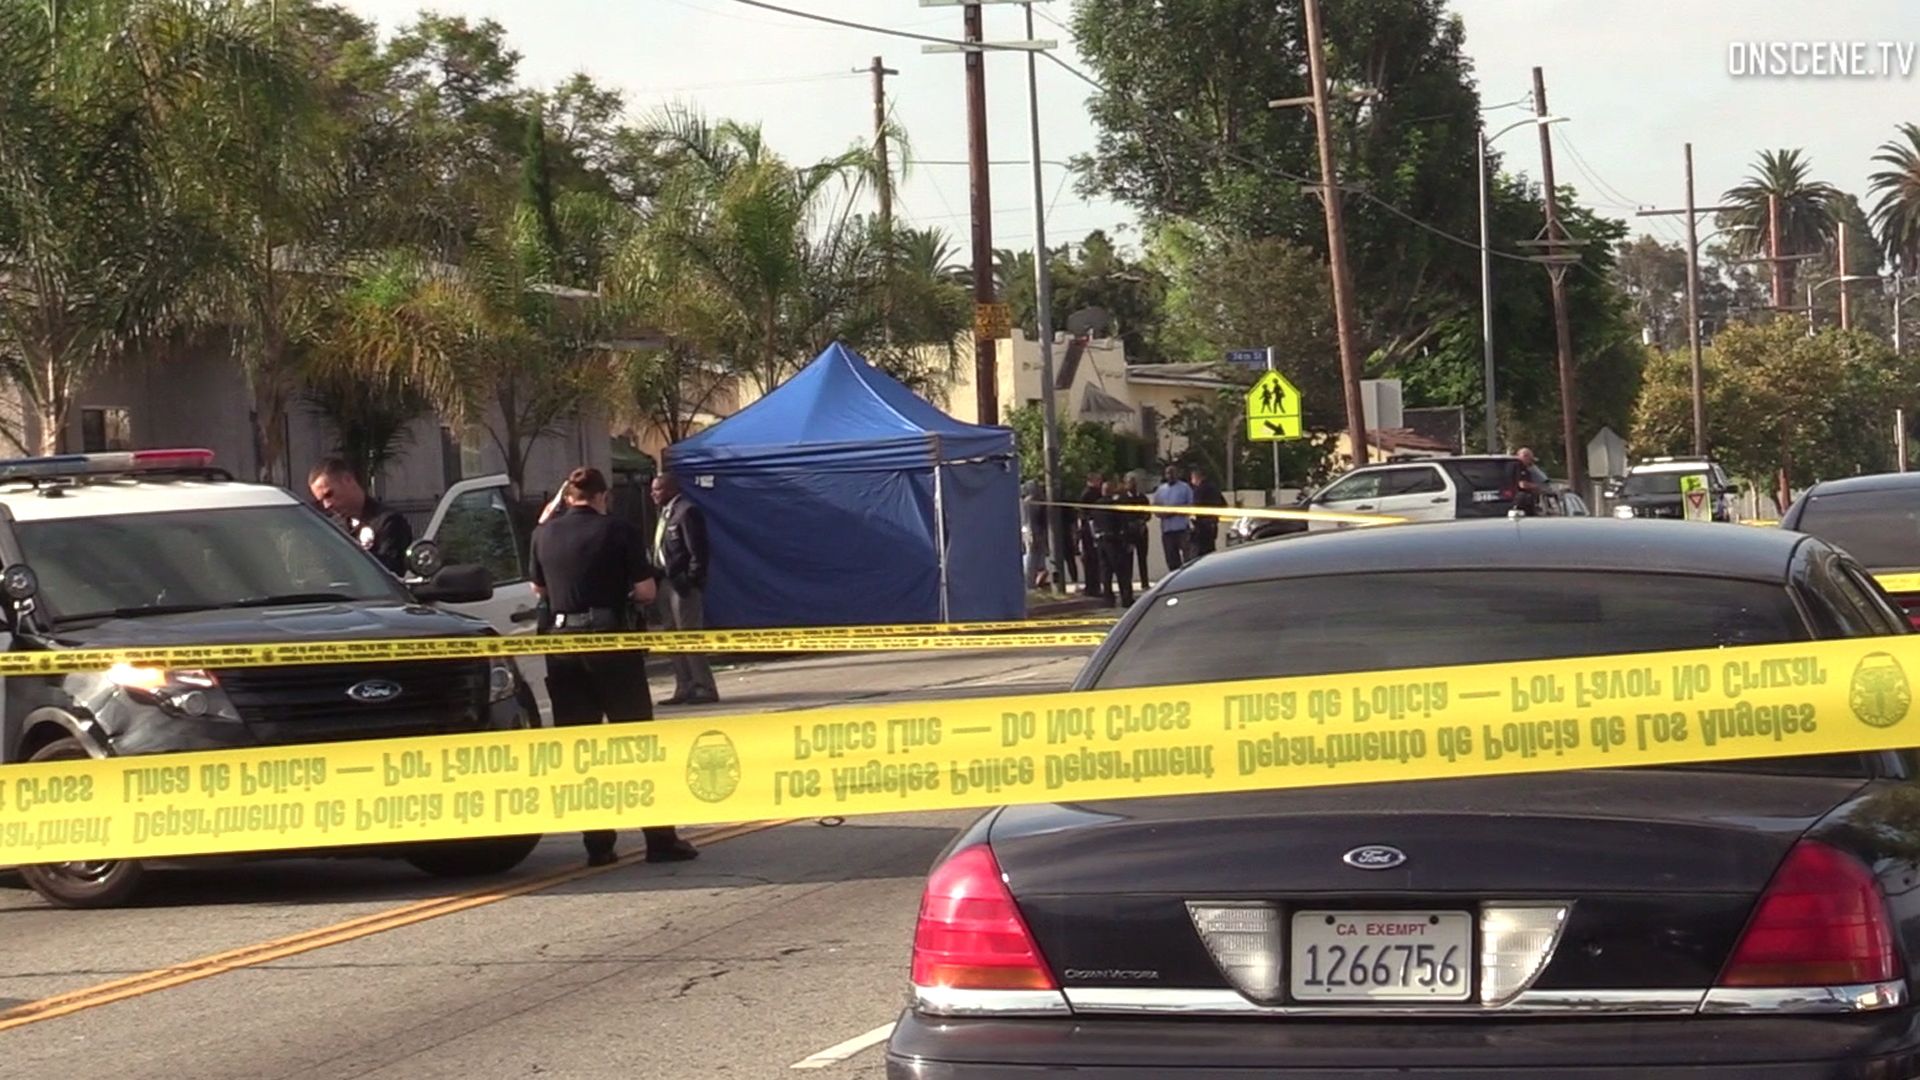 Law enforcement officials investigate the scene where a man was fatally shot during a suspected robbery in South L.A. on July 21, 2019. (Credit: Onscene.TV)